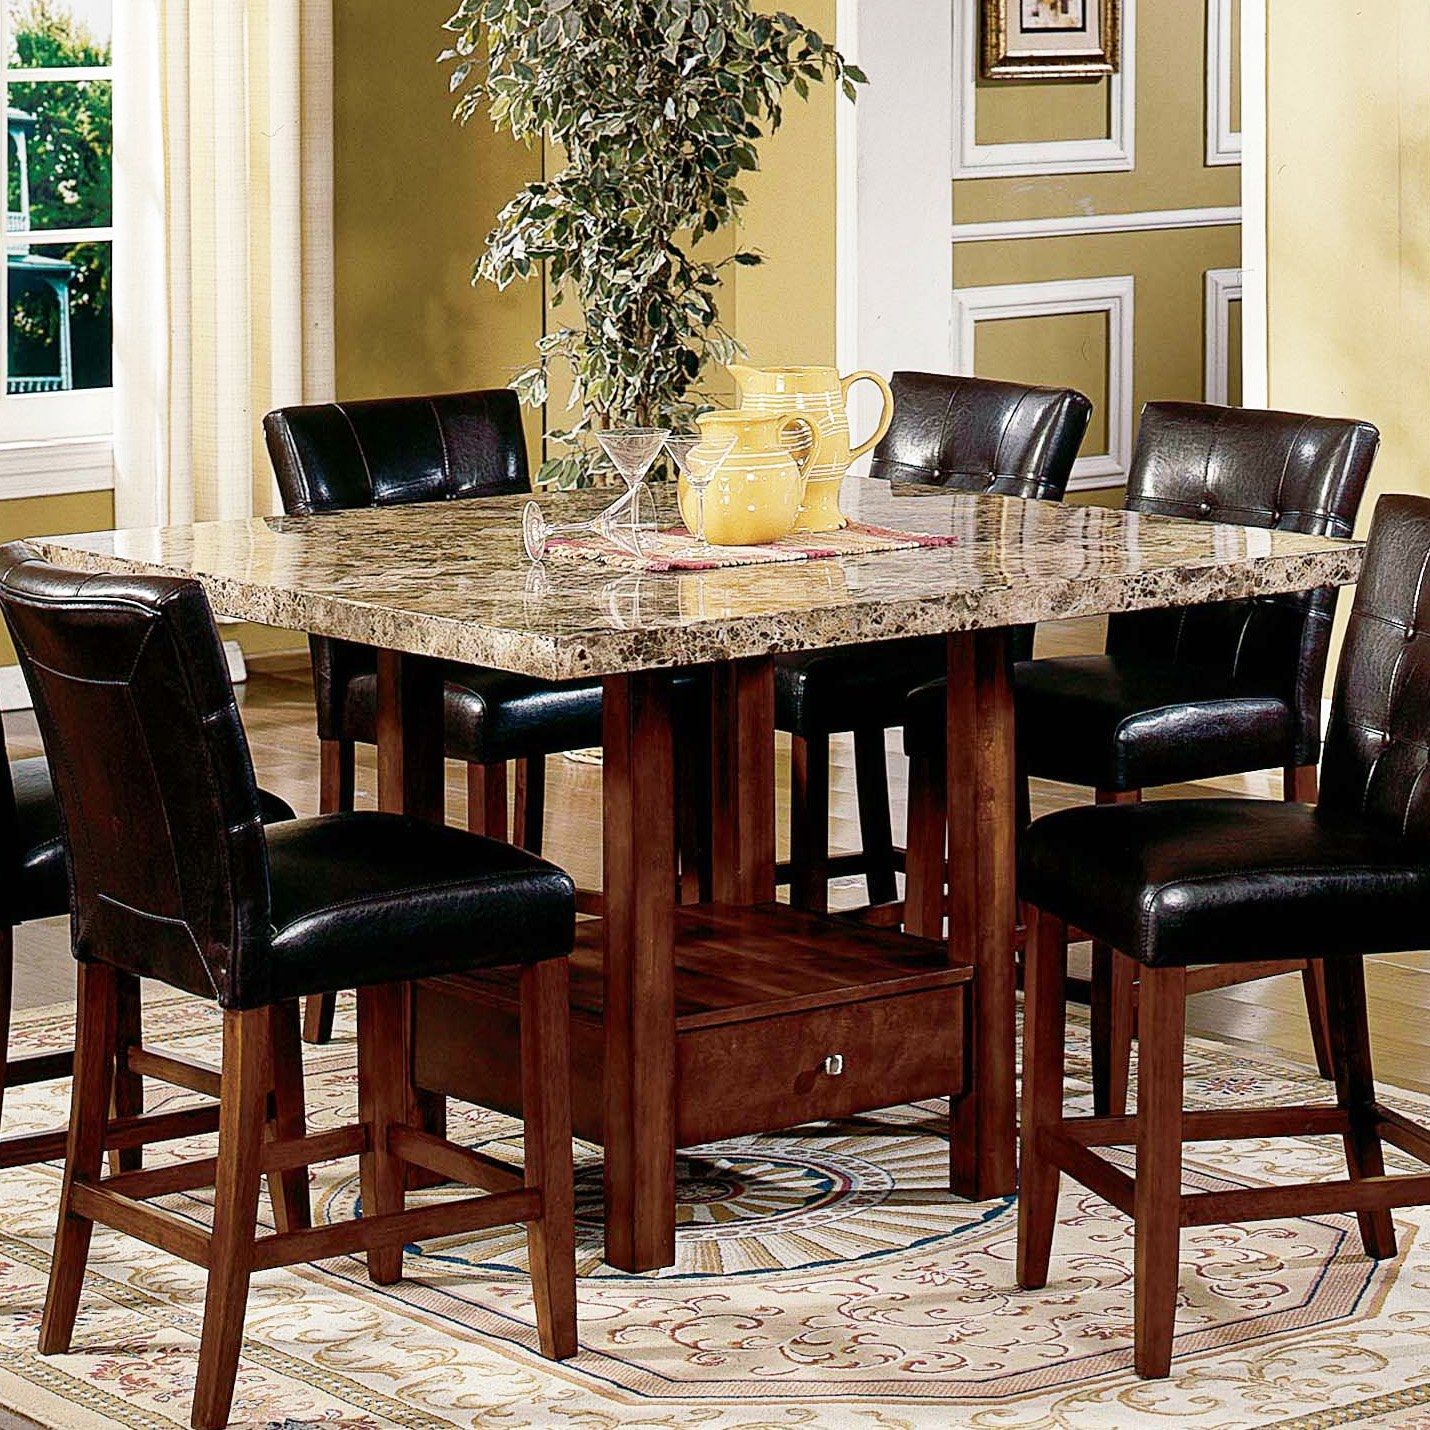 Tall Kitchen Table With Marble Top  Granite dining table, Marble